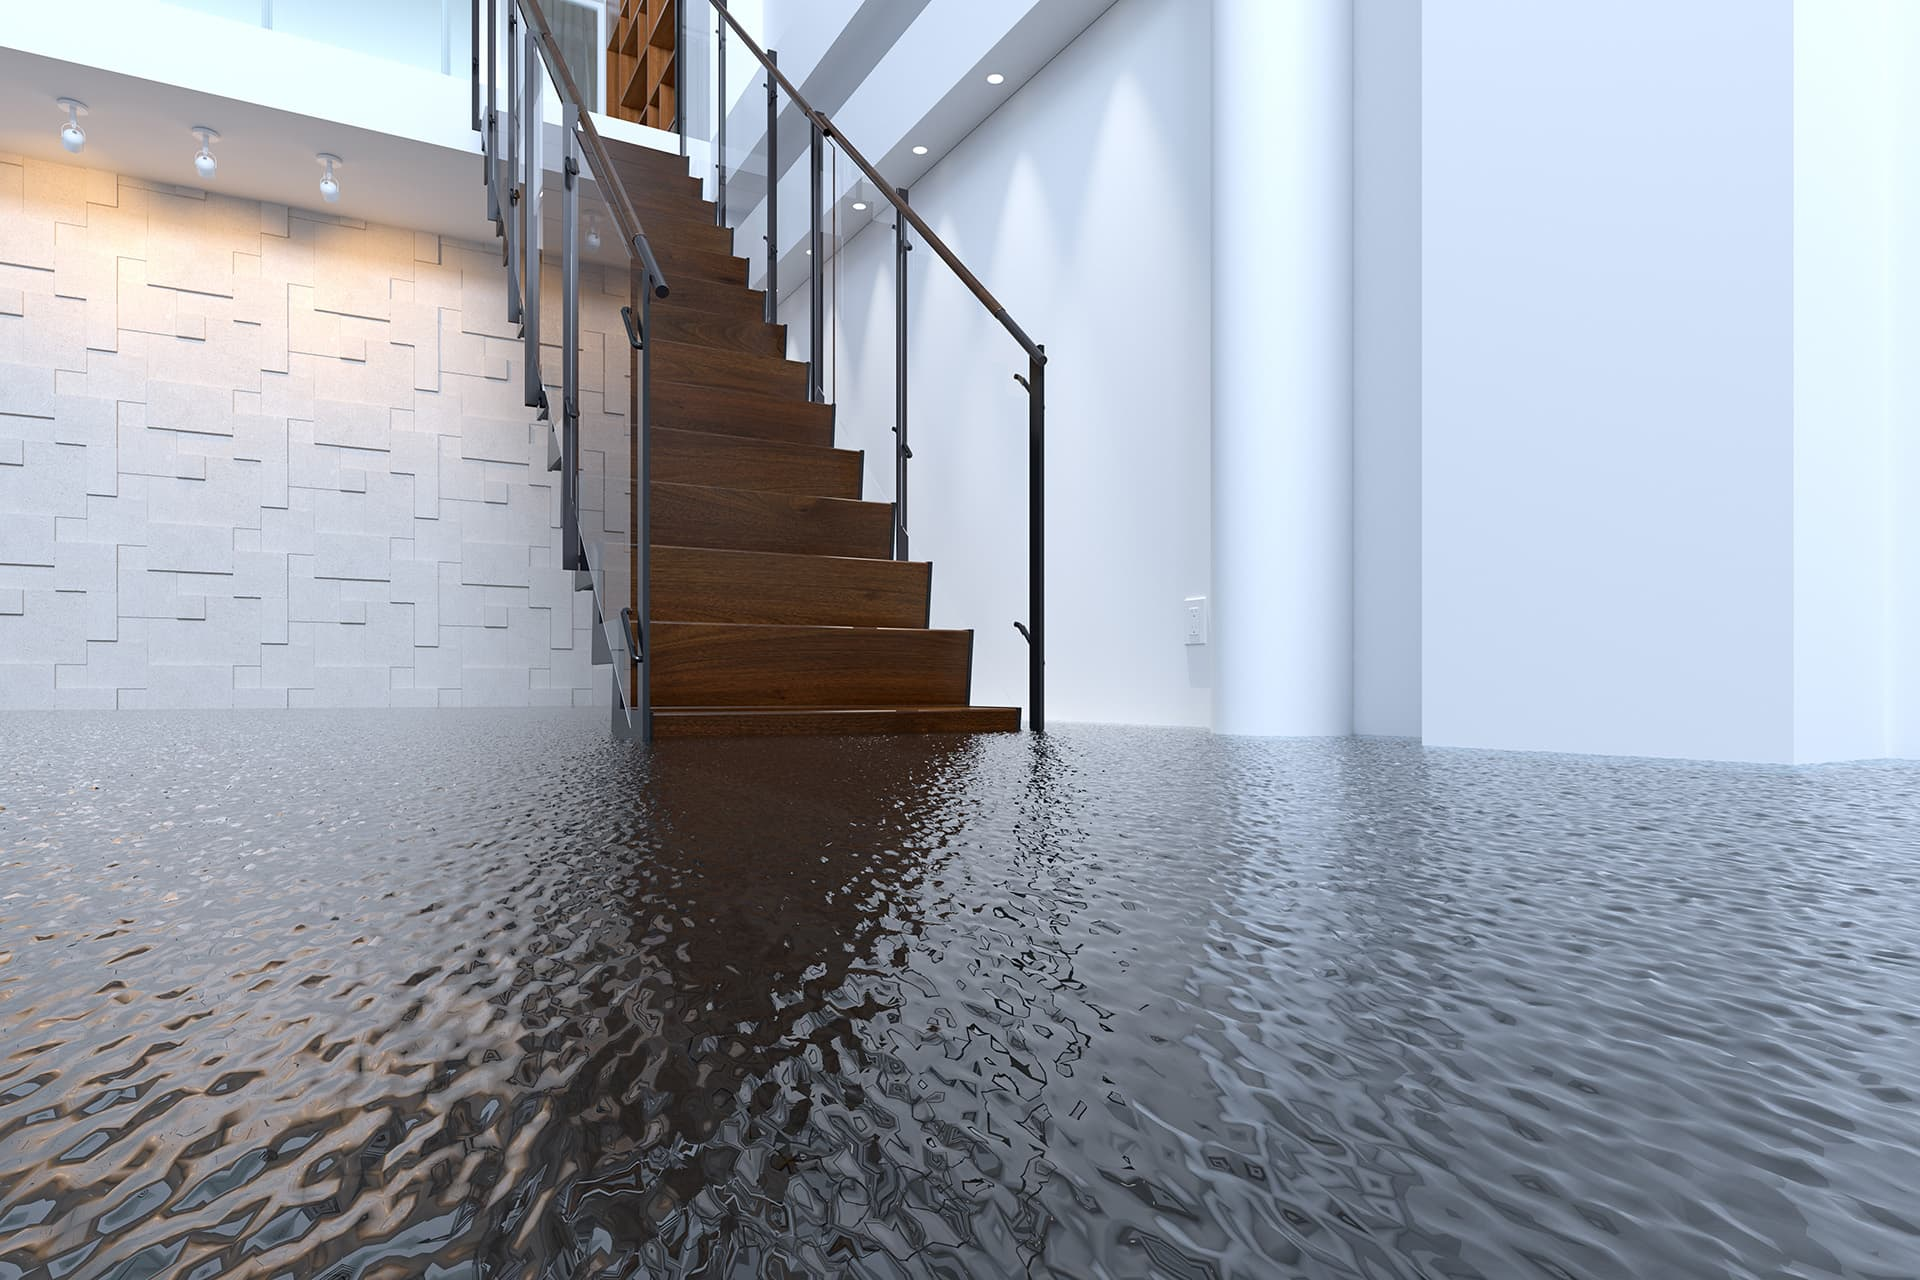 Supplemental insurance for building flooded with water